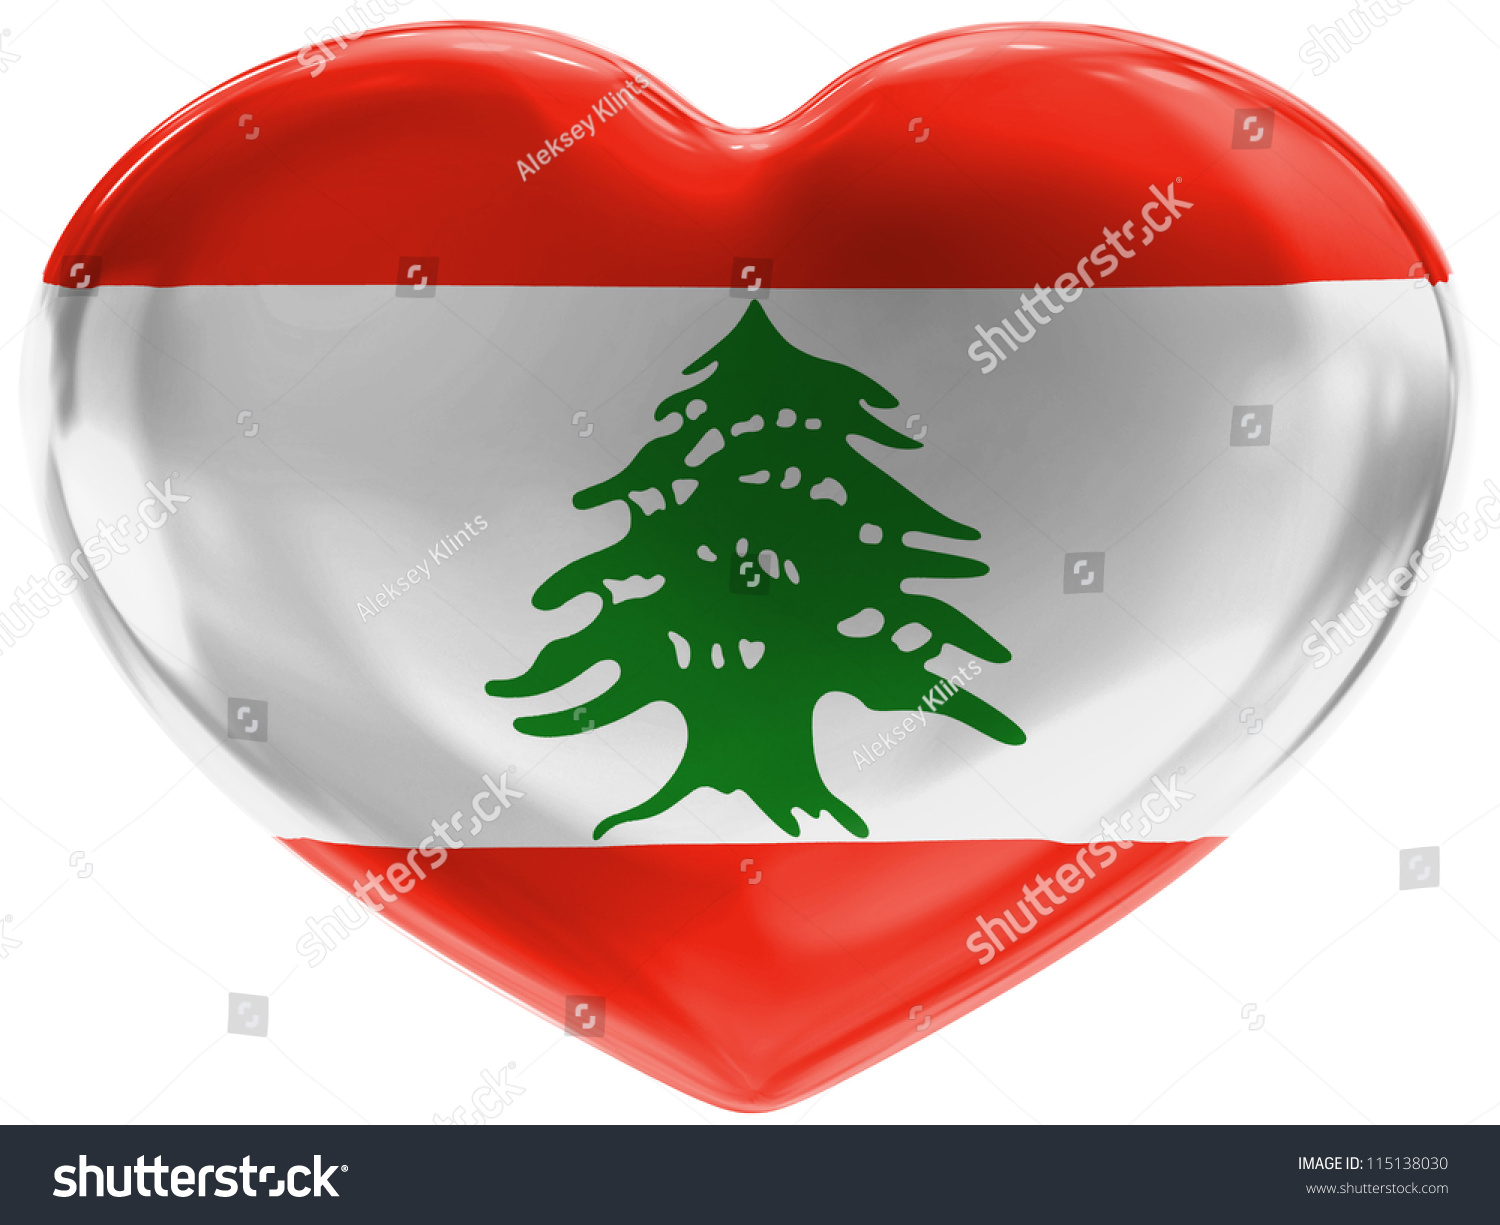 the lebanese flag painted on 3d heart symbol on white